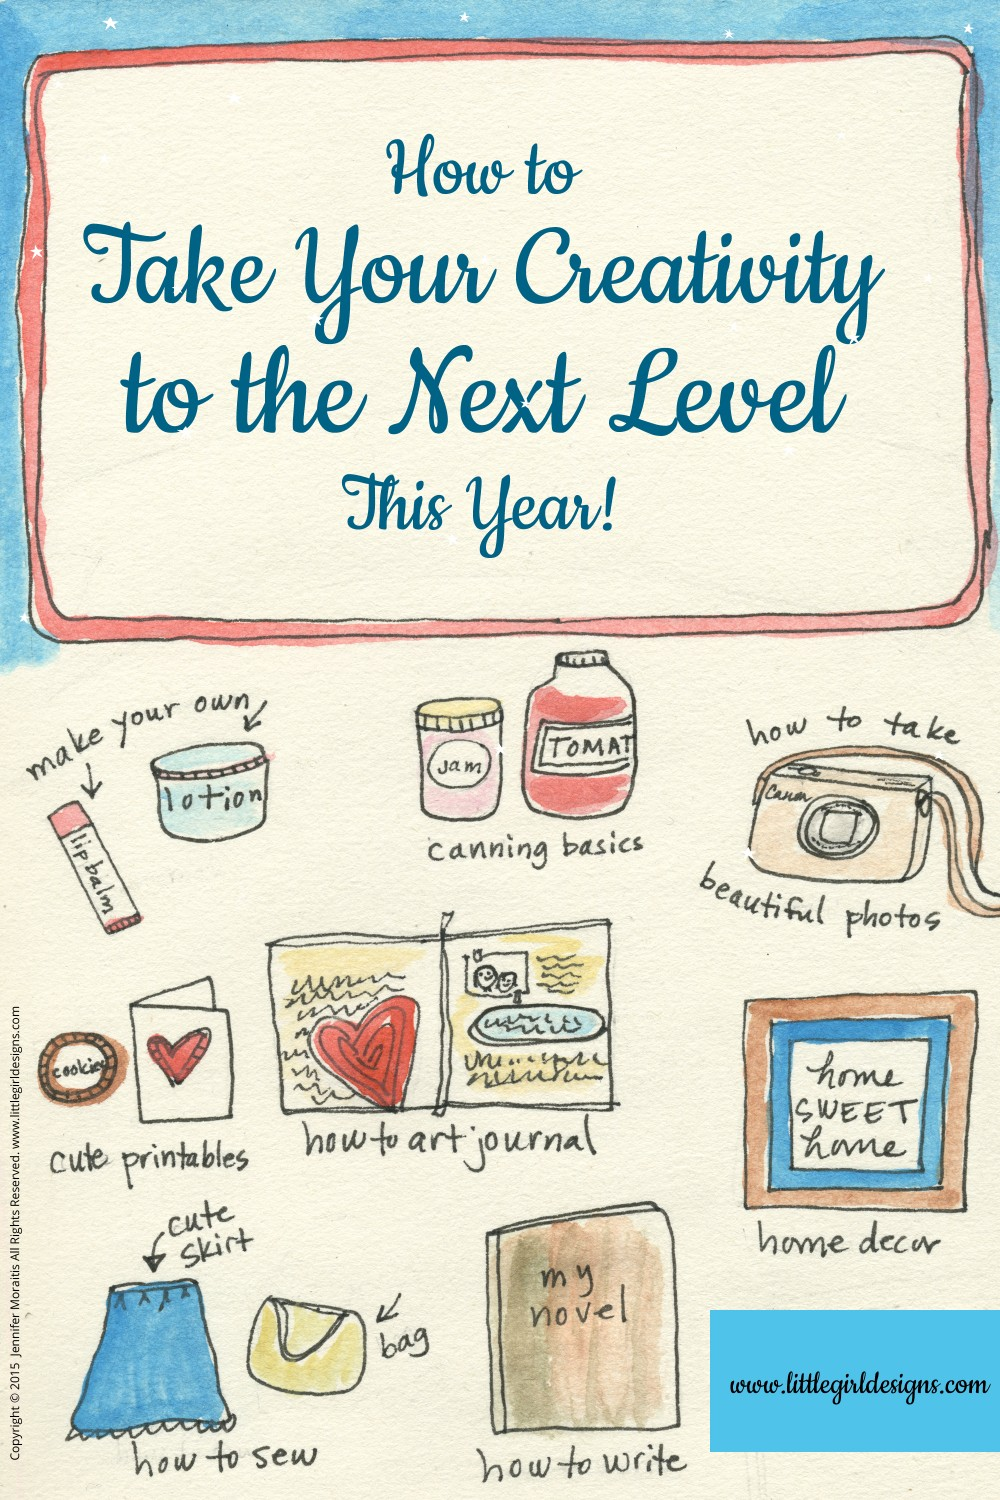 How to Take Your Creativity to the Next Level This Year - I'll show you the one resource that is going to explode your creativity this year! Read more @littlegirldesigns.com.